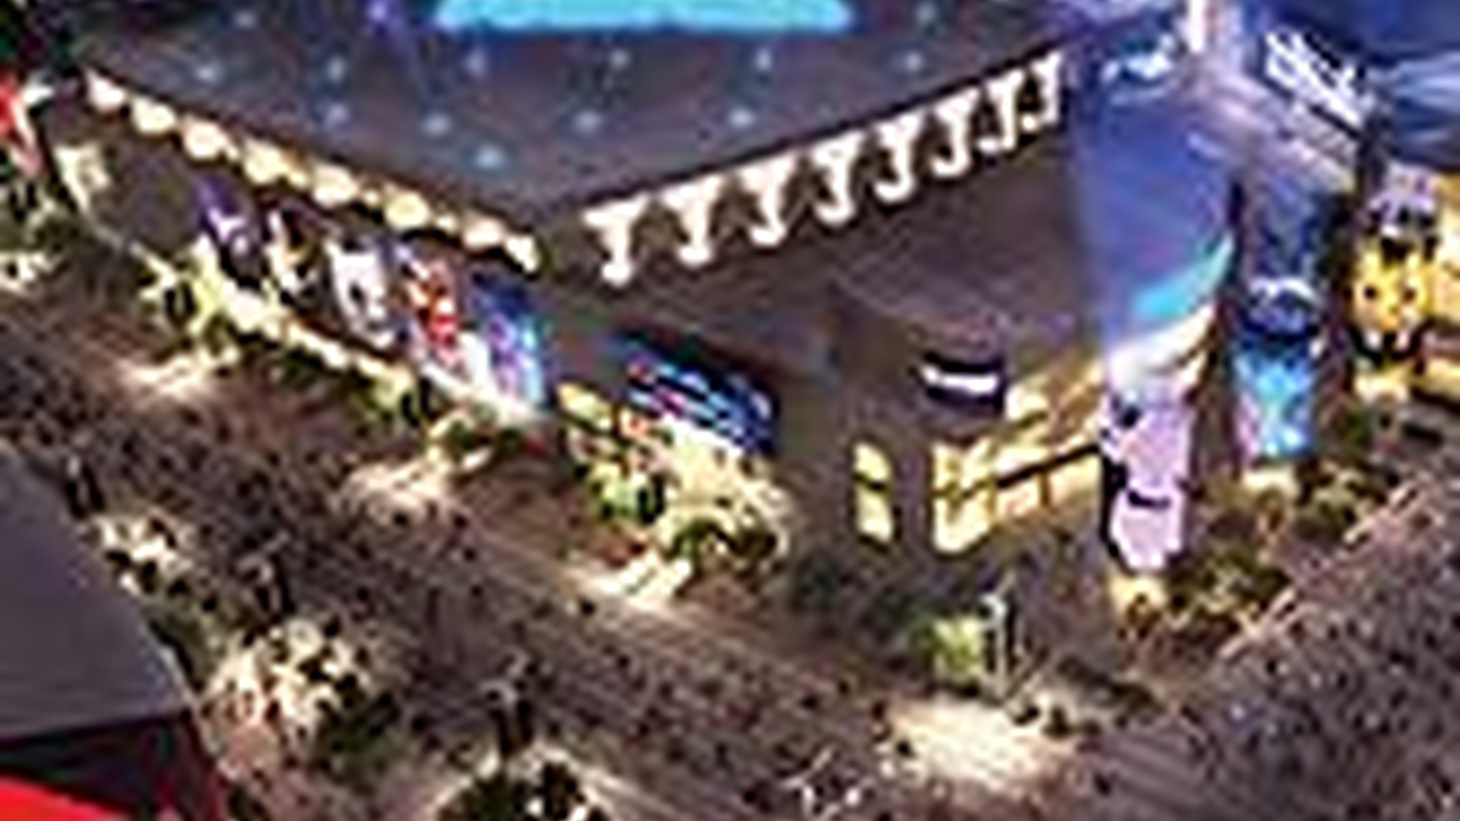 The new Nokia Theatre opened last night downtown with a concert by the Eagles and the Dixie Chicks. The Nokia is intended to be the more intimate venue next to Staples Center that will lure crowds to L.A. Live...